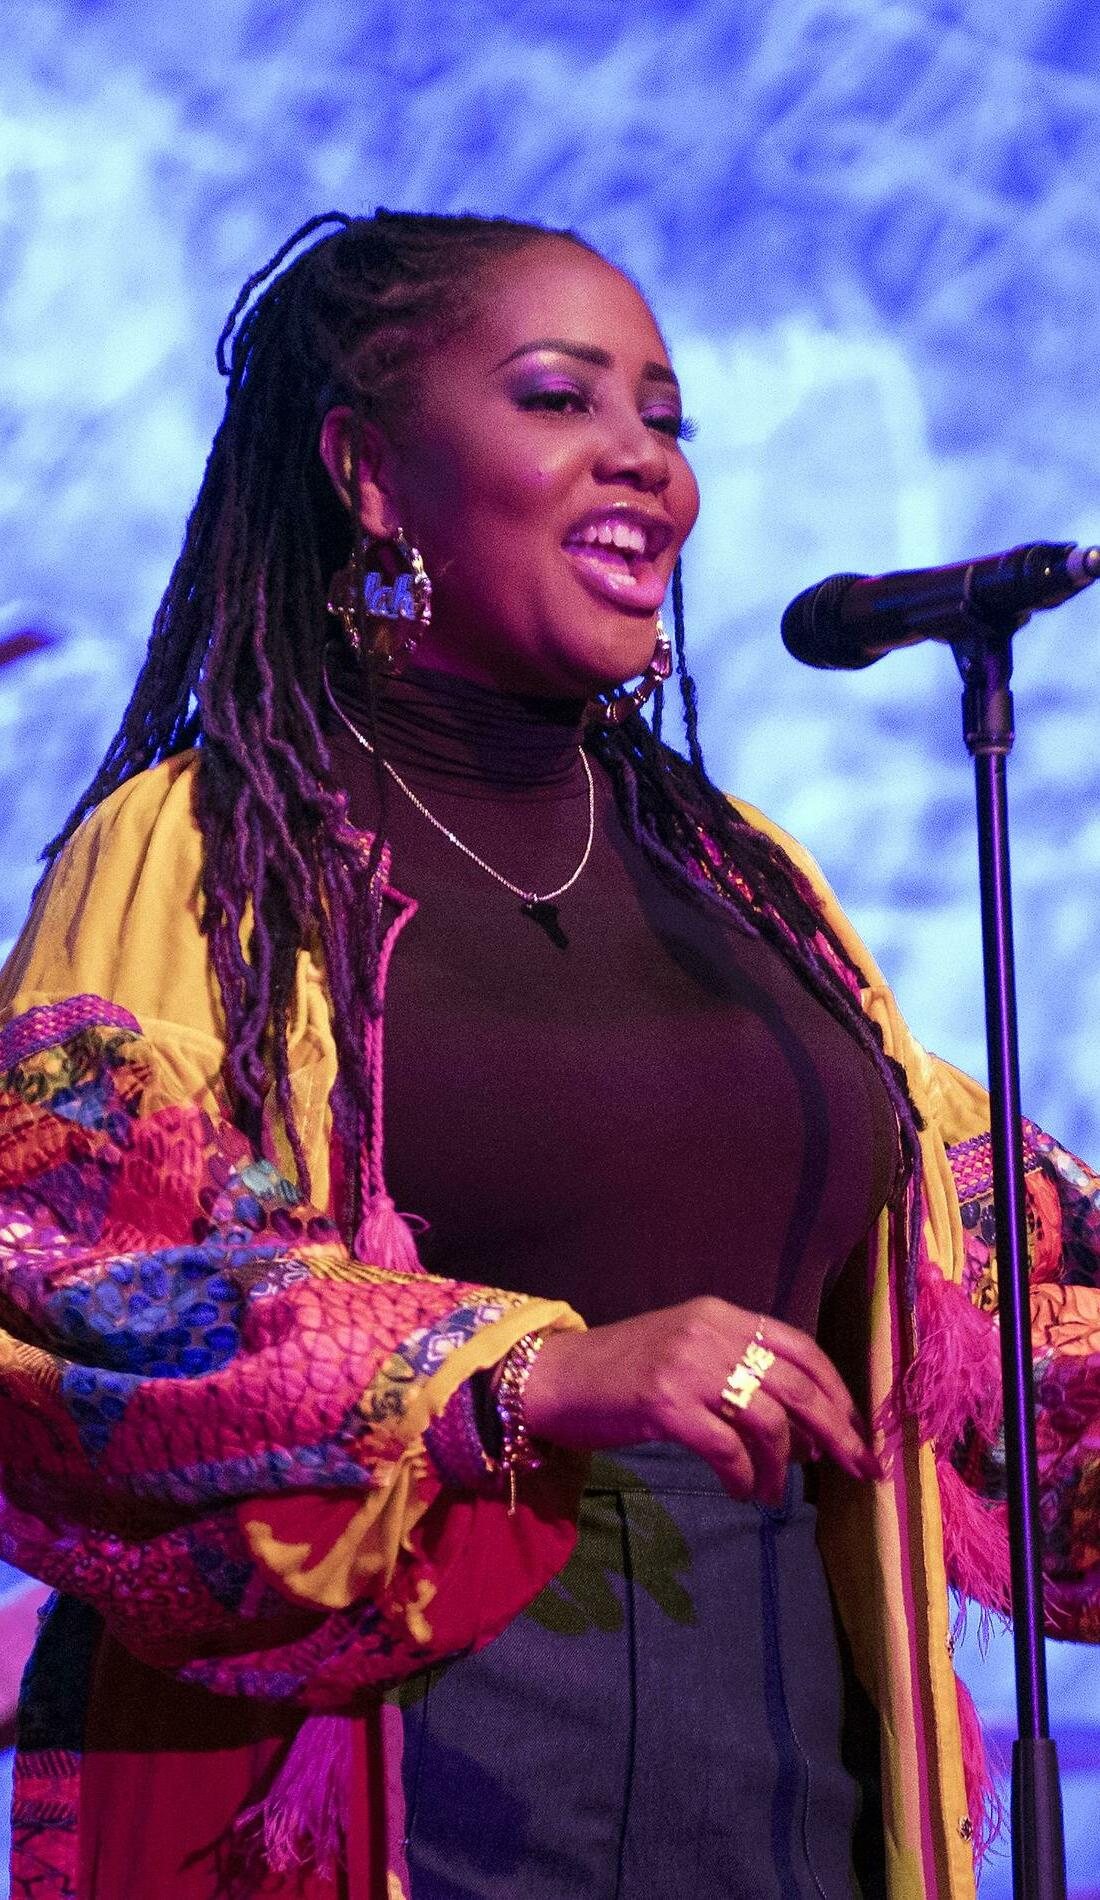 A Lalah Hathaway live event